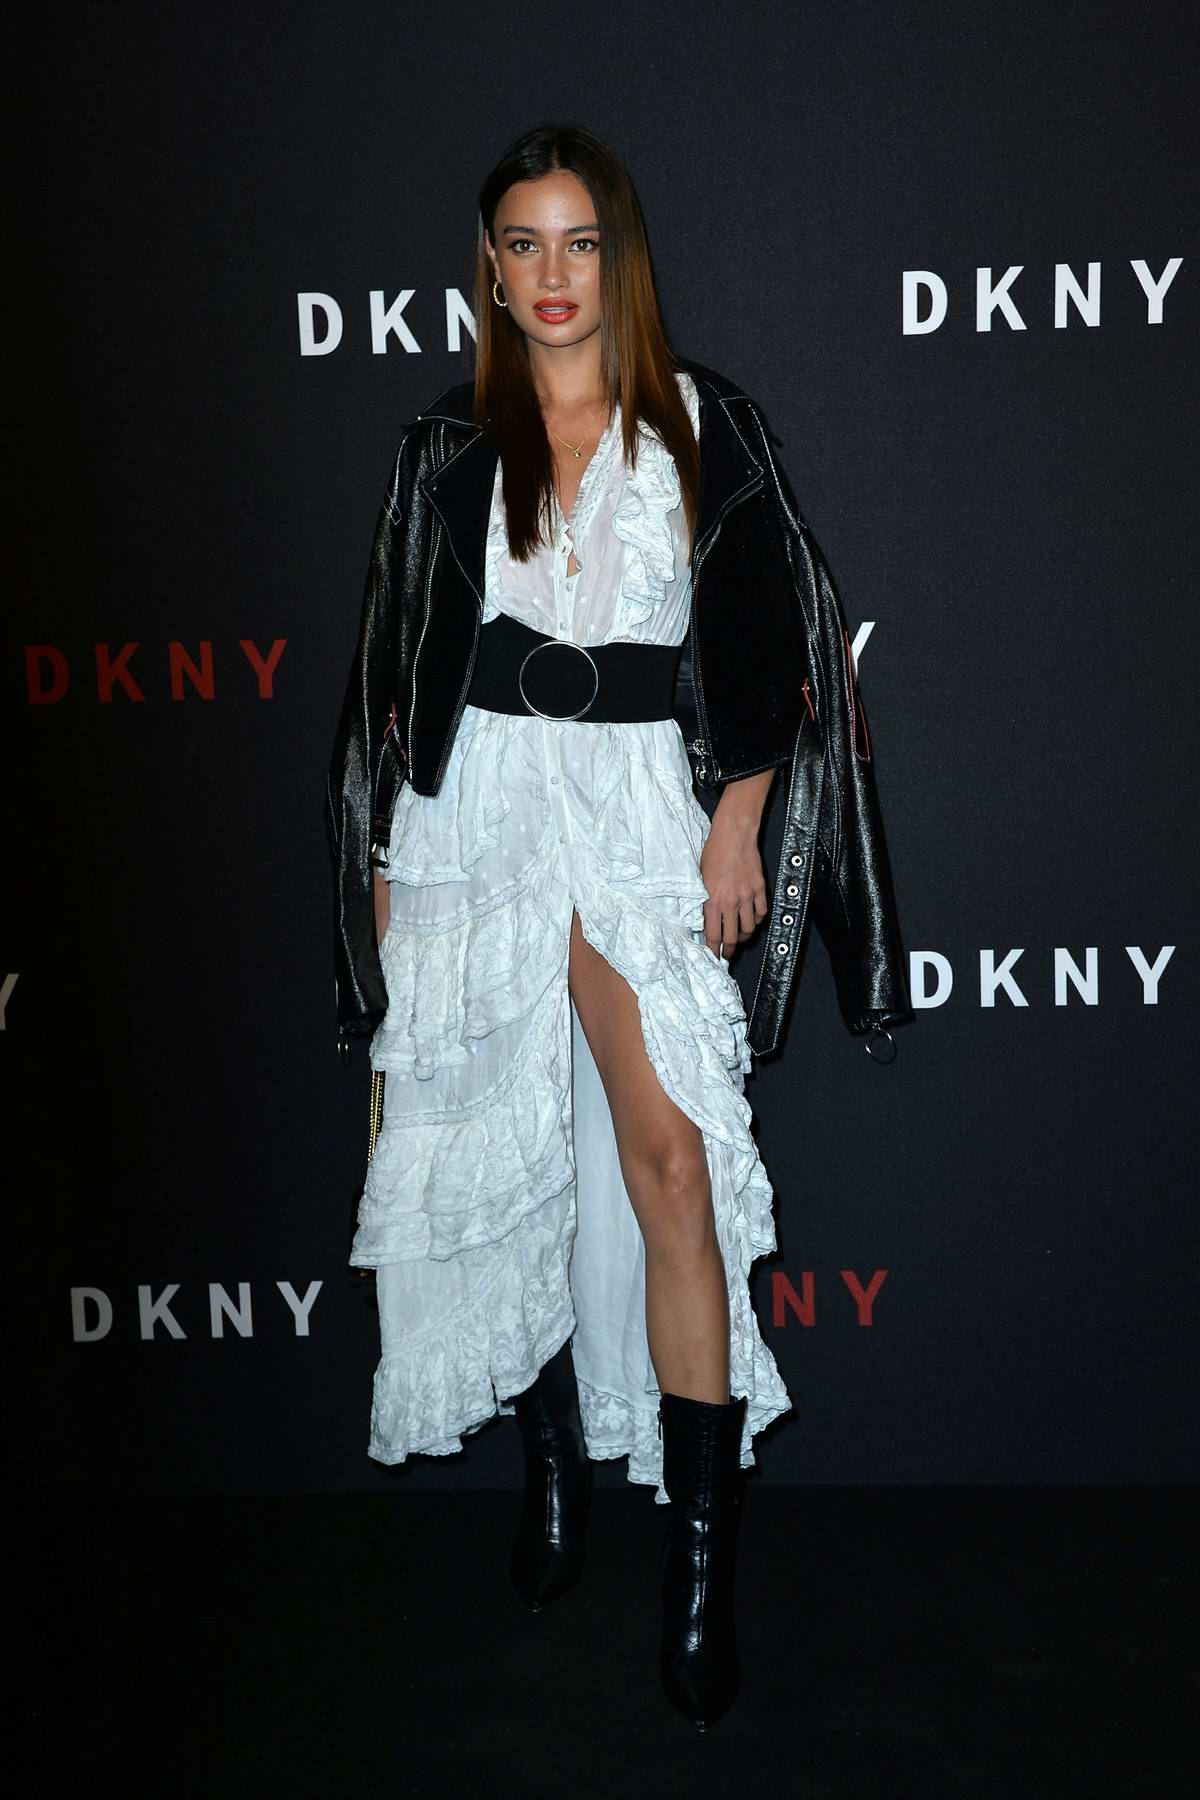 Kelsey Merritt attends DKNY 30th birthday party during New York Fashion Week in New York City